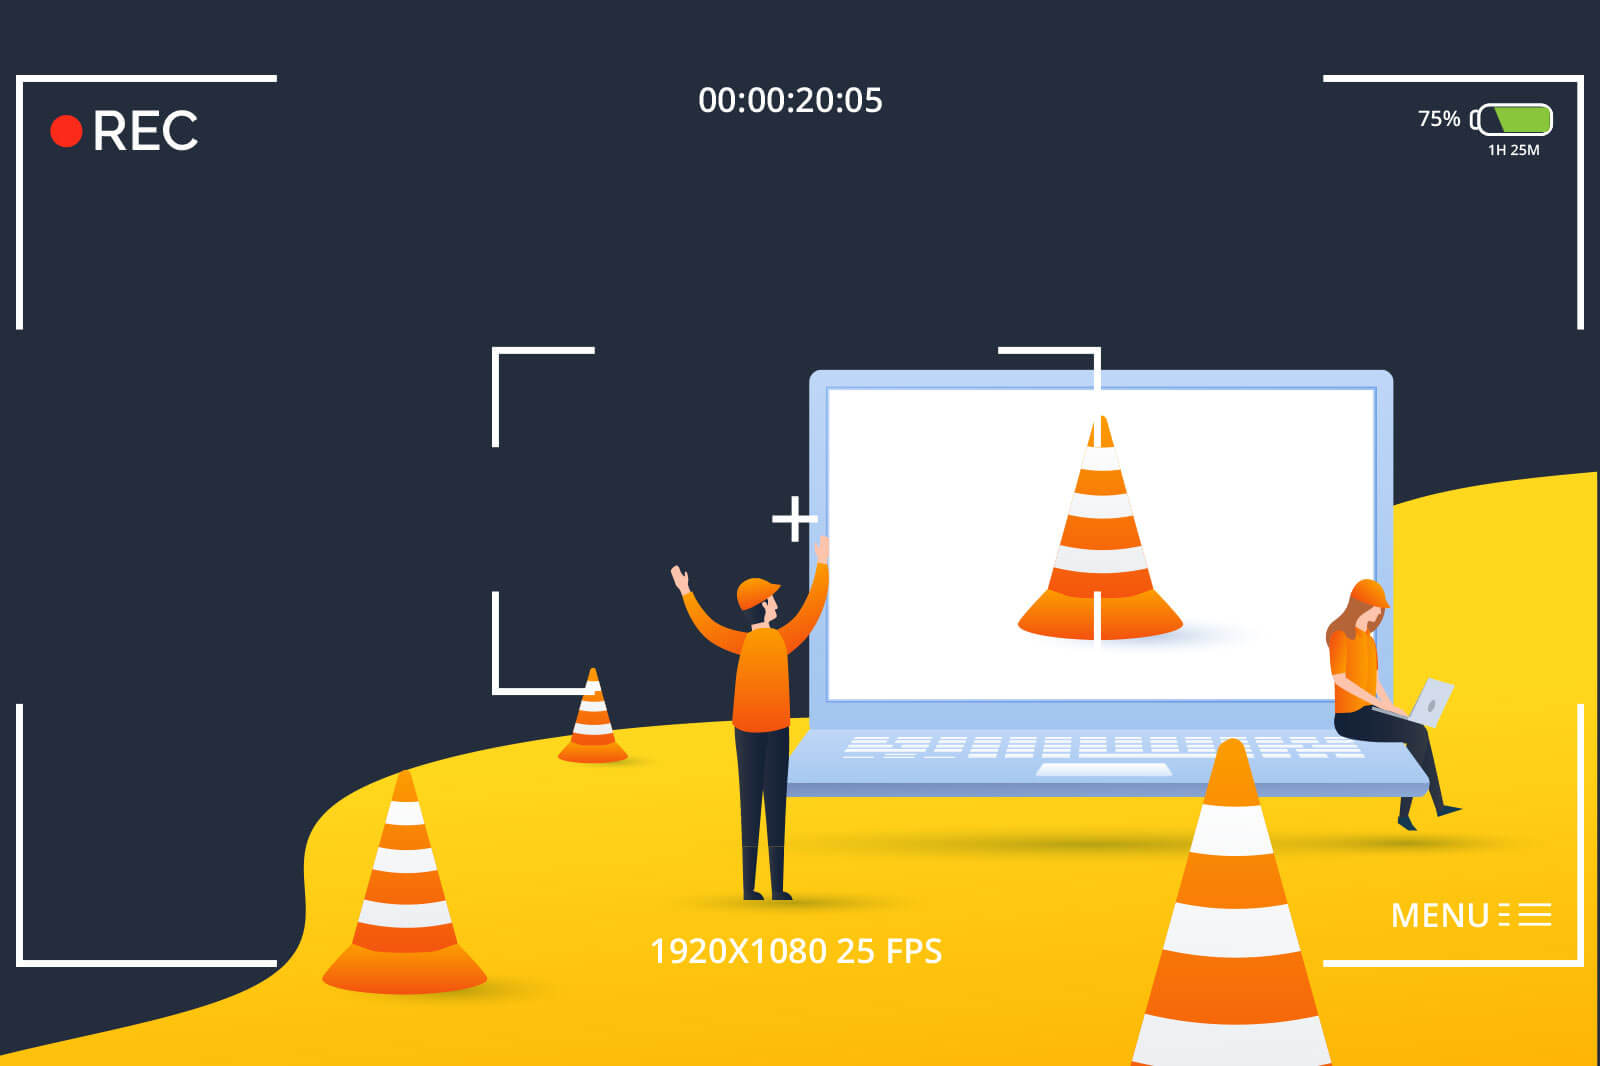 Recording using VLC player